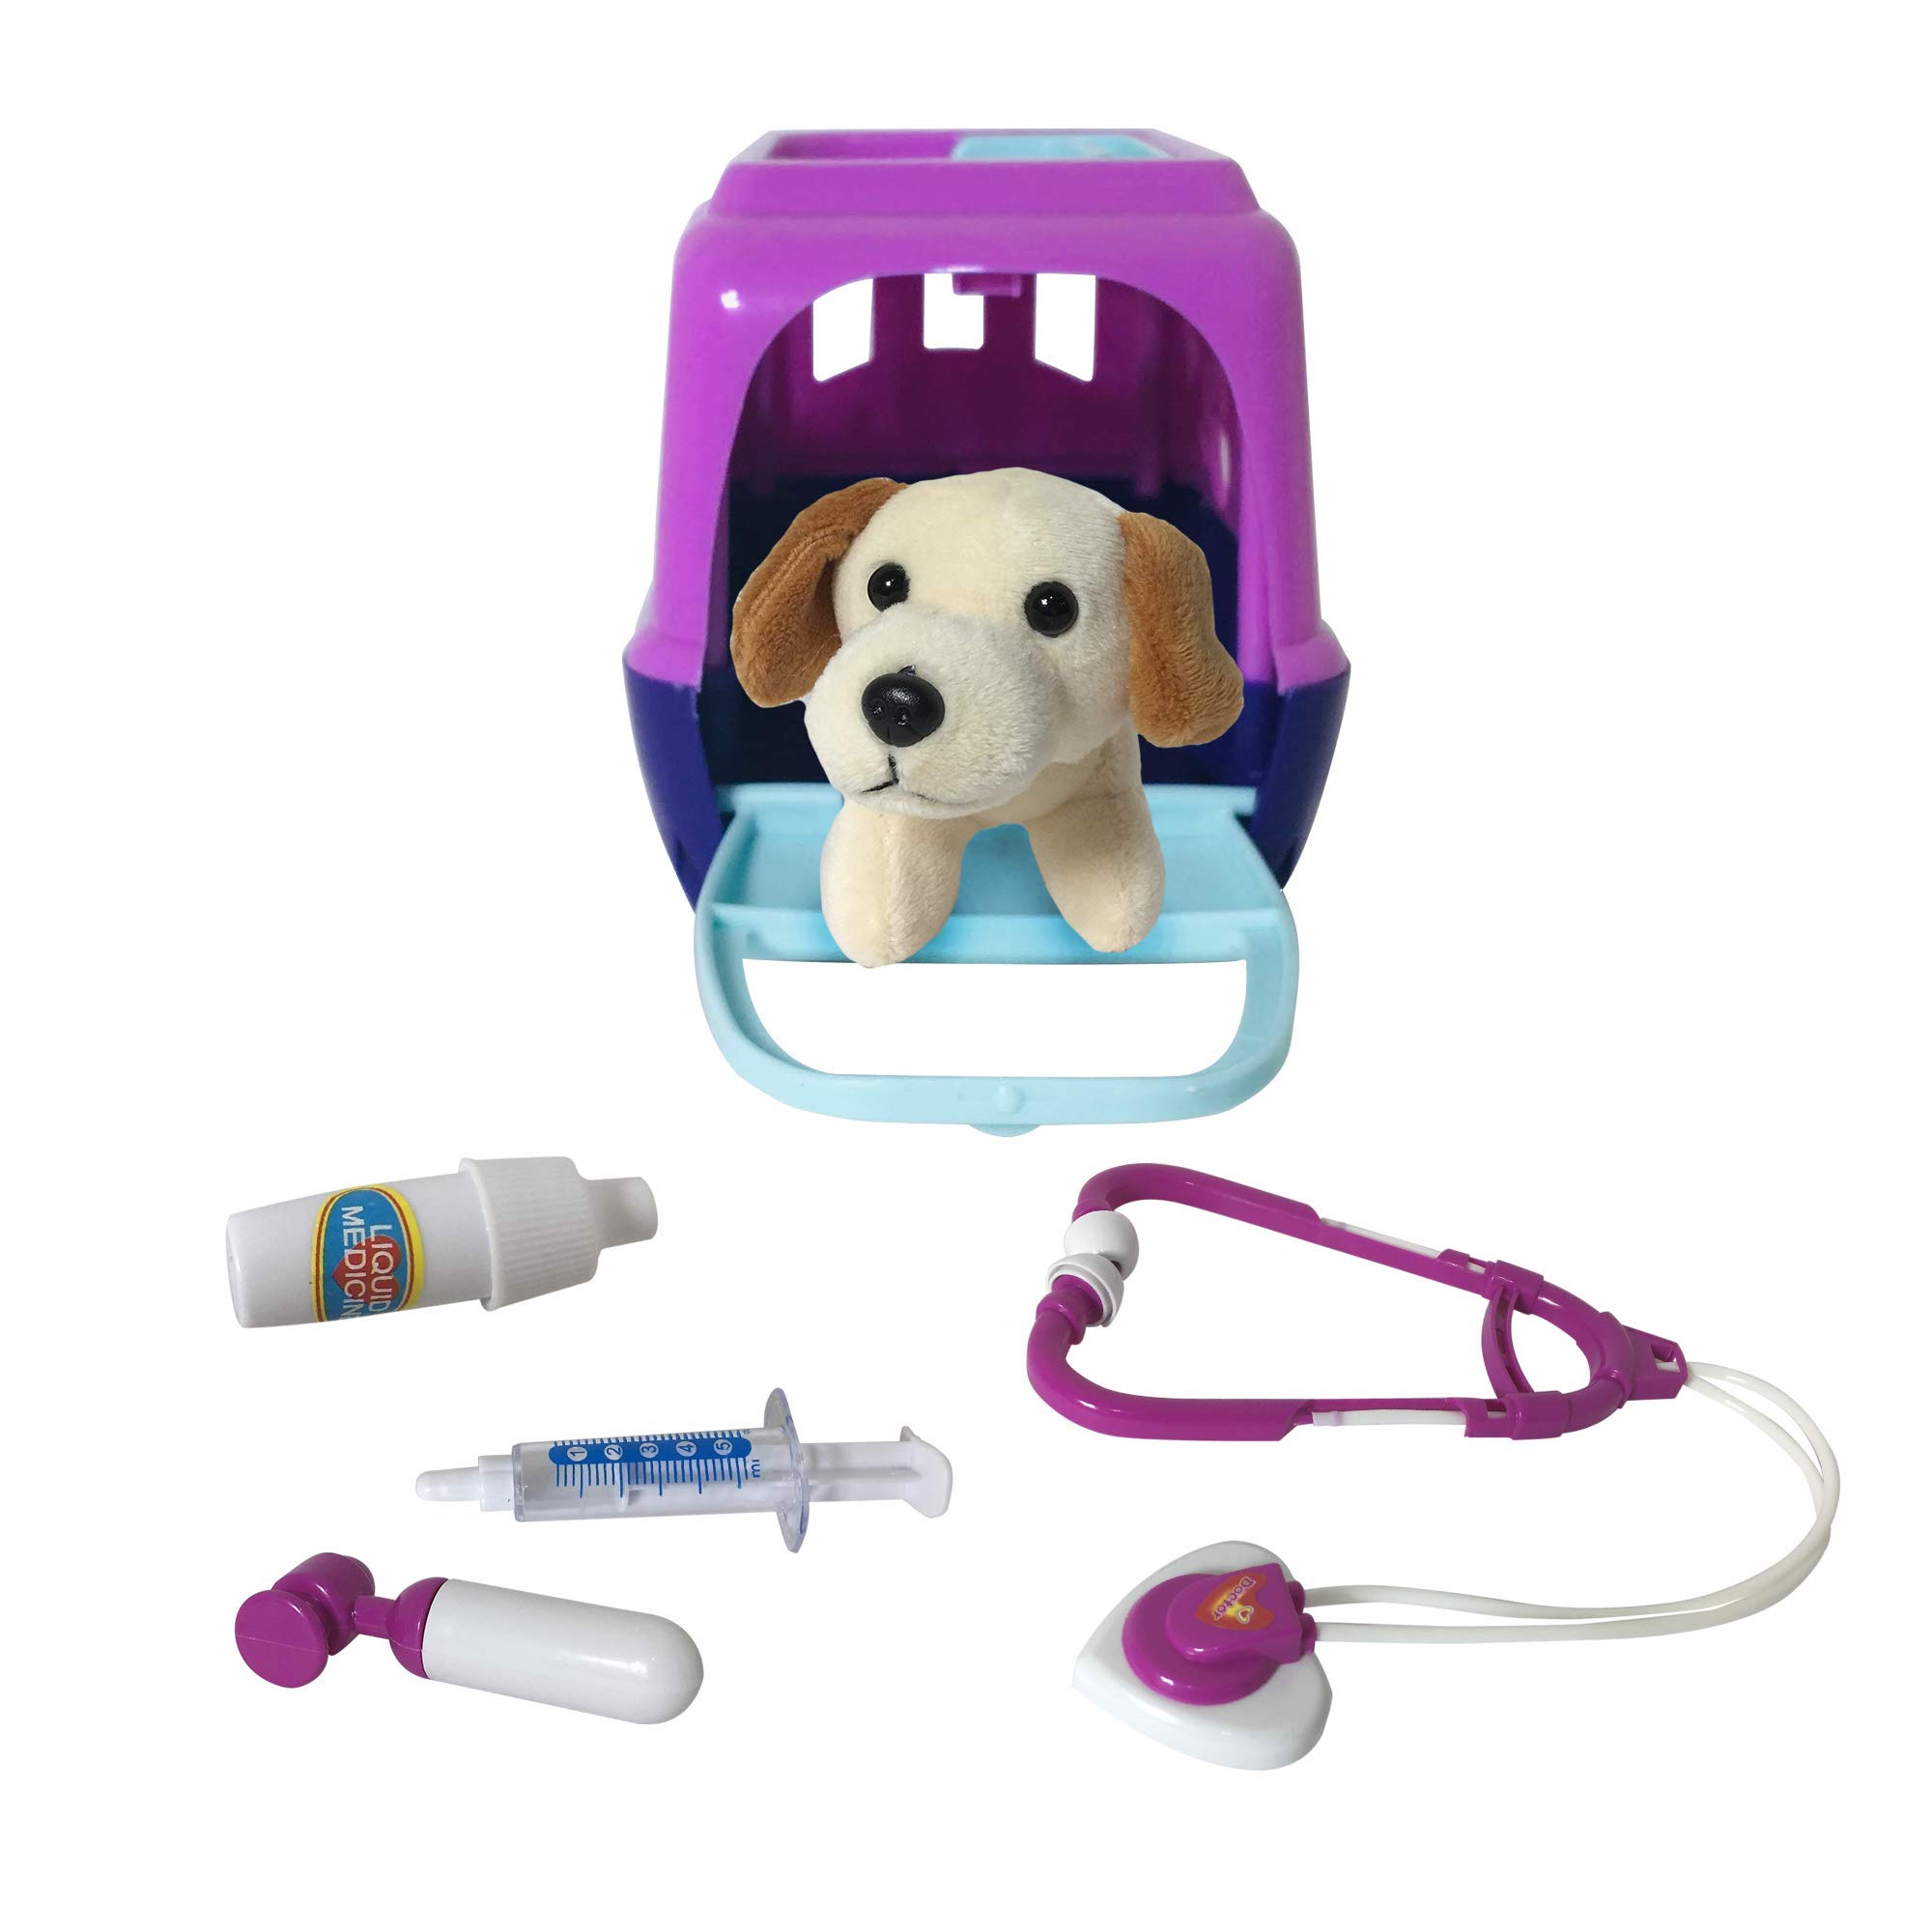 Plush Pals Kids Vet Toy Set - Plush Dog & Pet Carrier Veterinarian Animal Care Doctor Role Play Game [6 Pieces]